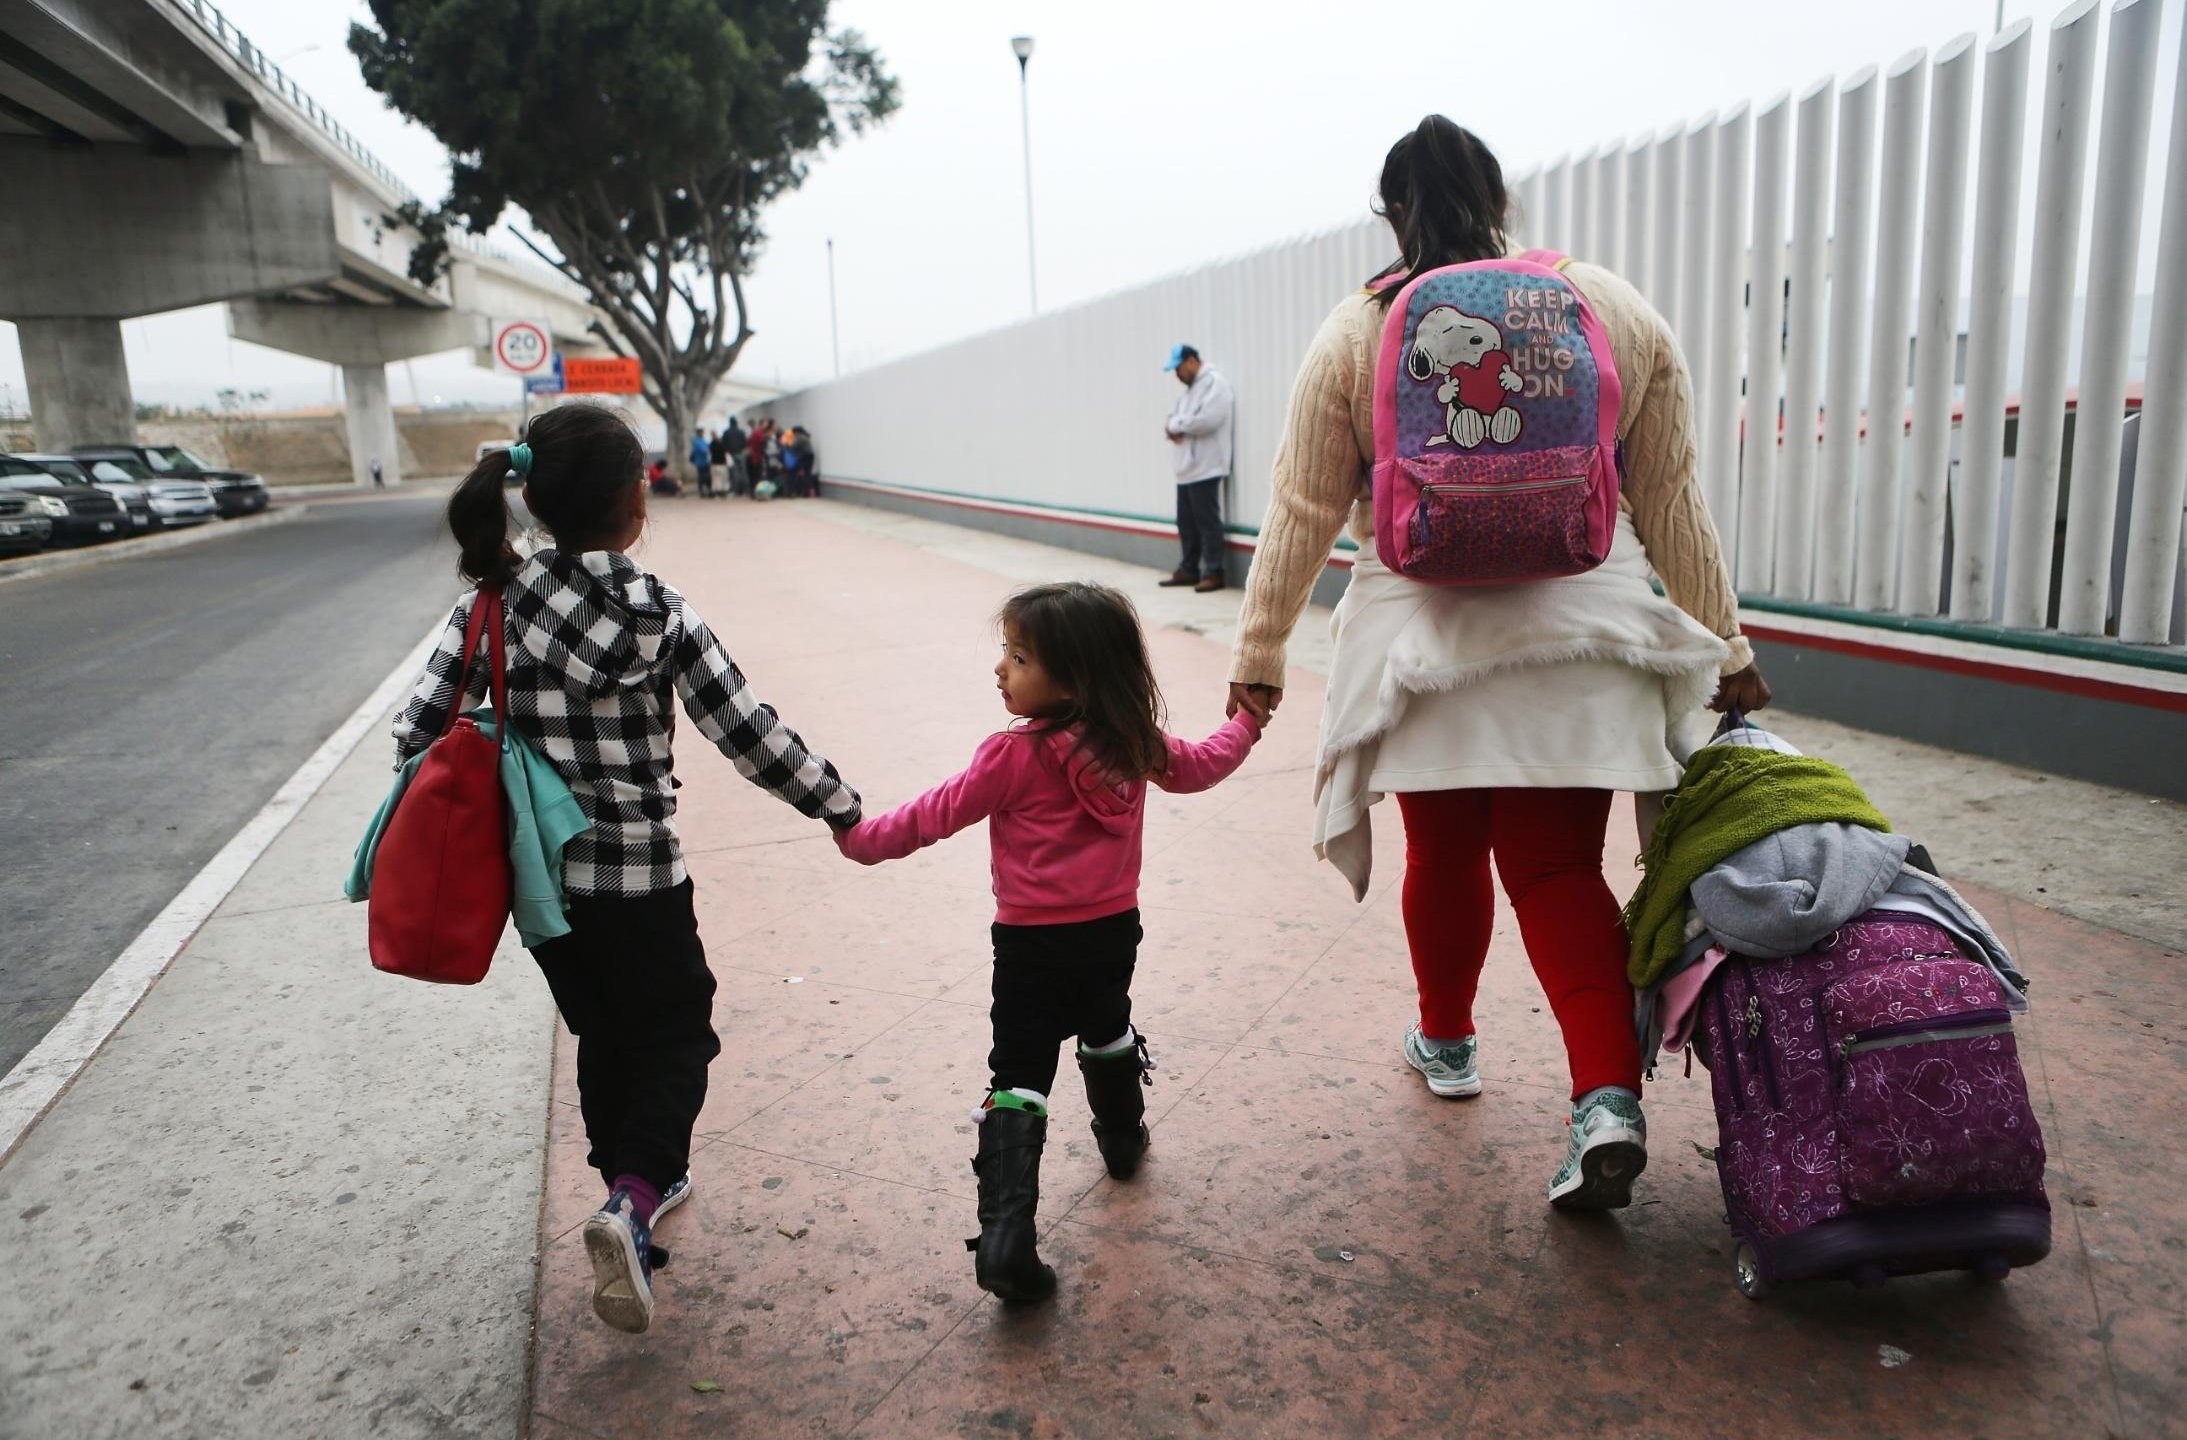 A migrant mother walks with her two daughters on their way to cross the port of entry into the U.S. in this June 2018 photo. A 10-year-old Salvadoran girl who died in Department of Health and Human Services custody last September was identified Friday by a US Customs and Border Protection official as Darlyn Cristabel Cordova-Valle. (Credit: CNN)